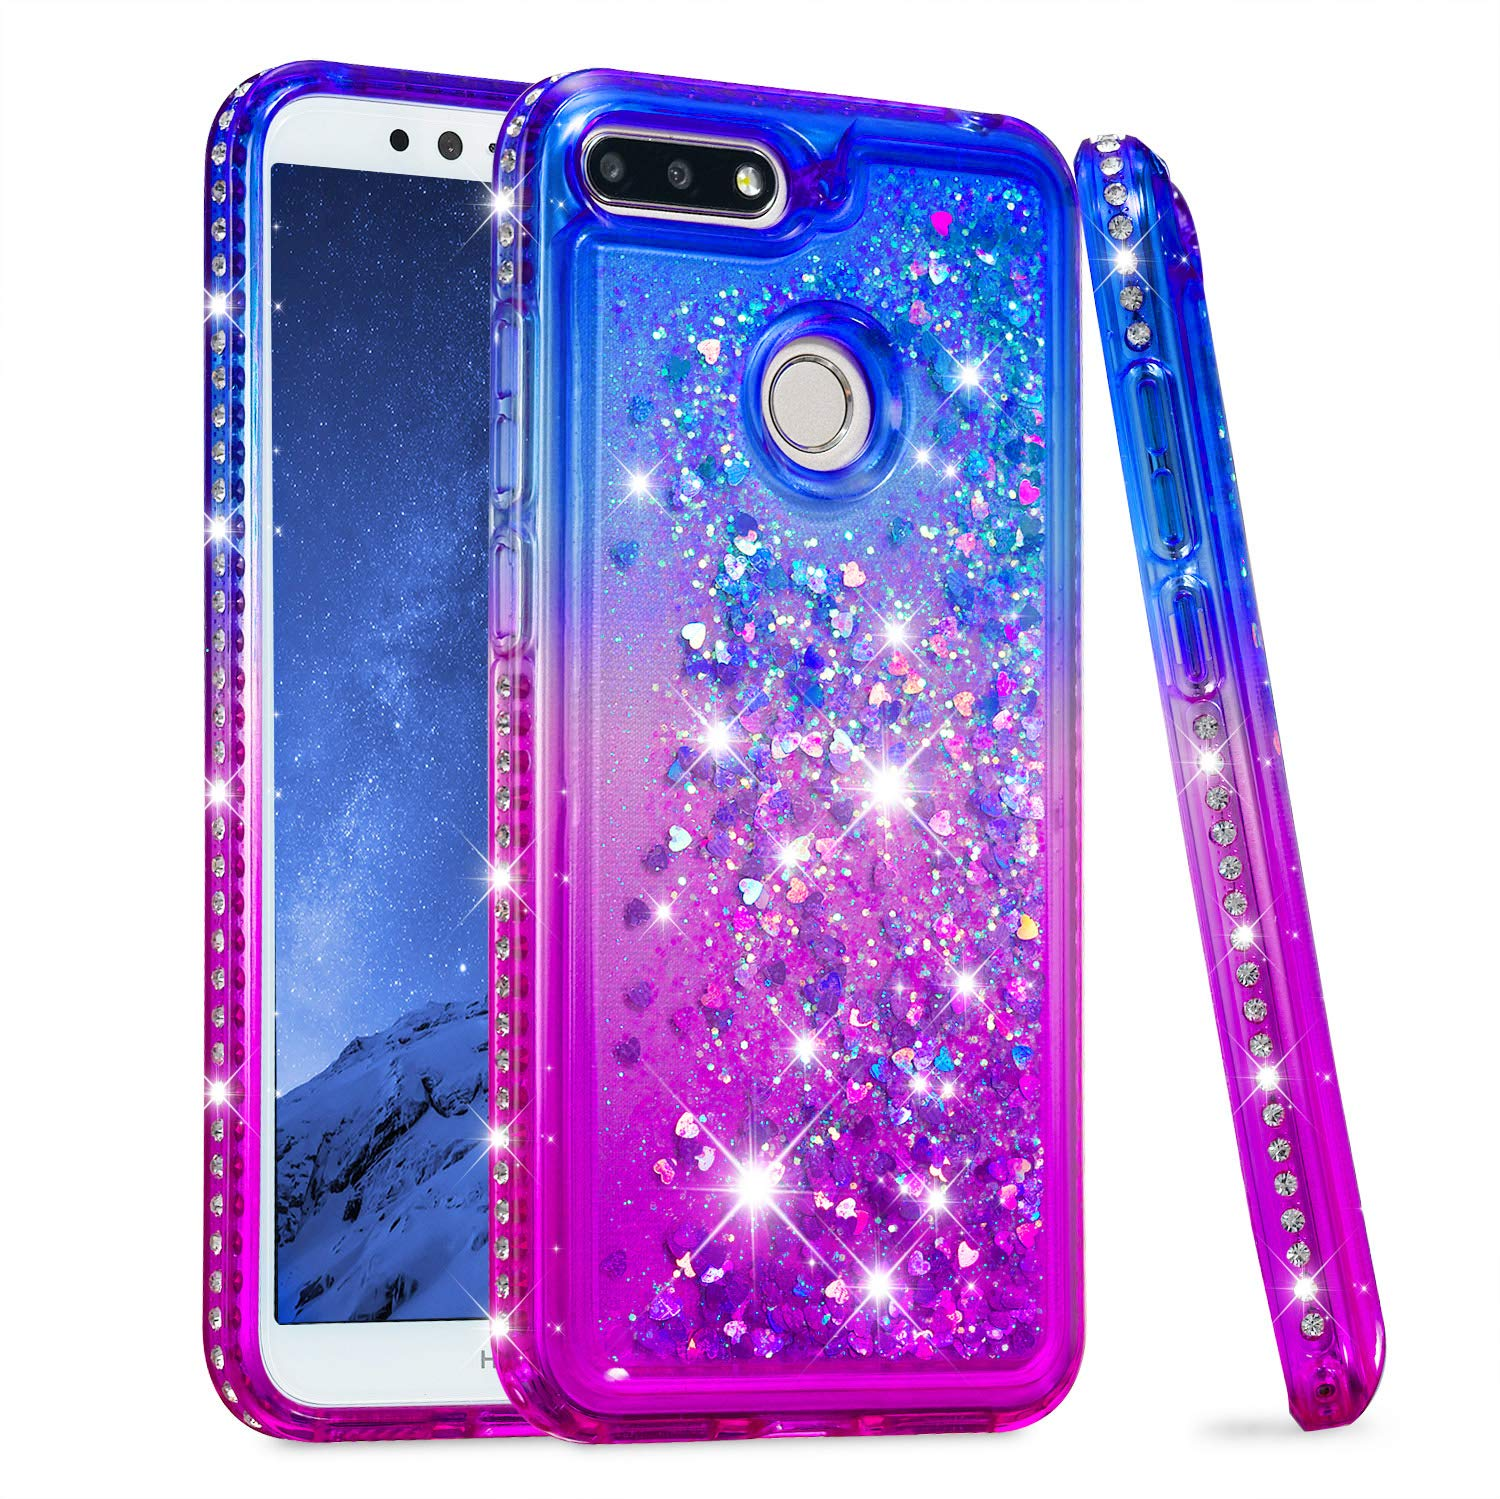 timeless design d5240 d3b03 Huawei Honor 7A Case, Huawei Honor 7A Glitter Liquid Case, Bosunny Liquid  Glitter Bling Flowing Case Cover, Premium Shockproof Anti-Scratch Back  Cover ...